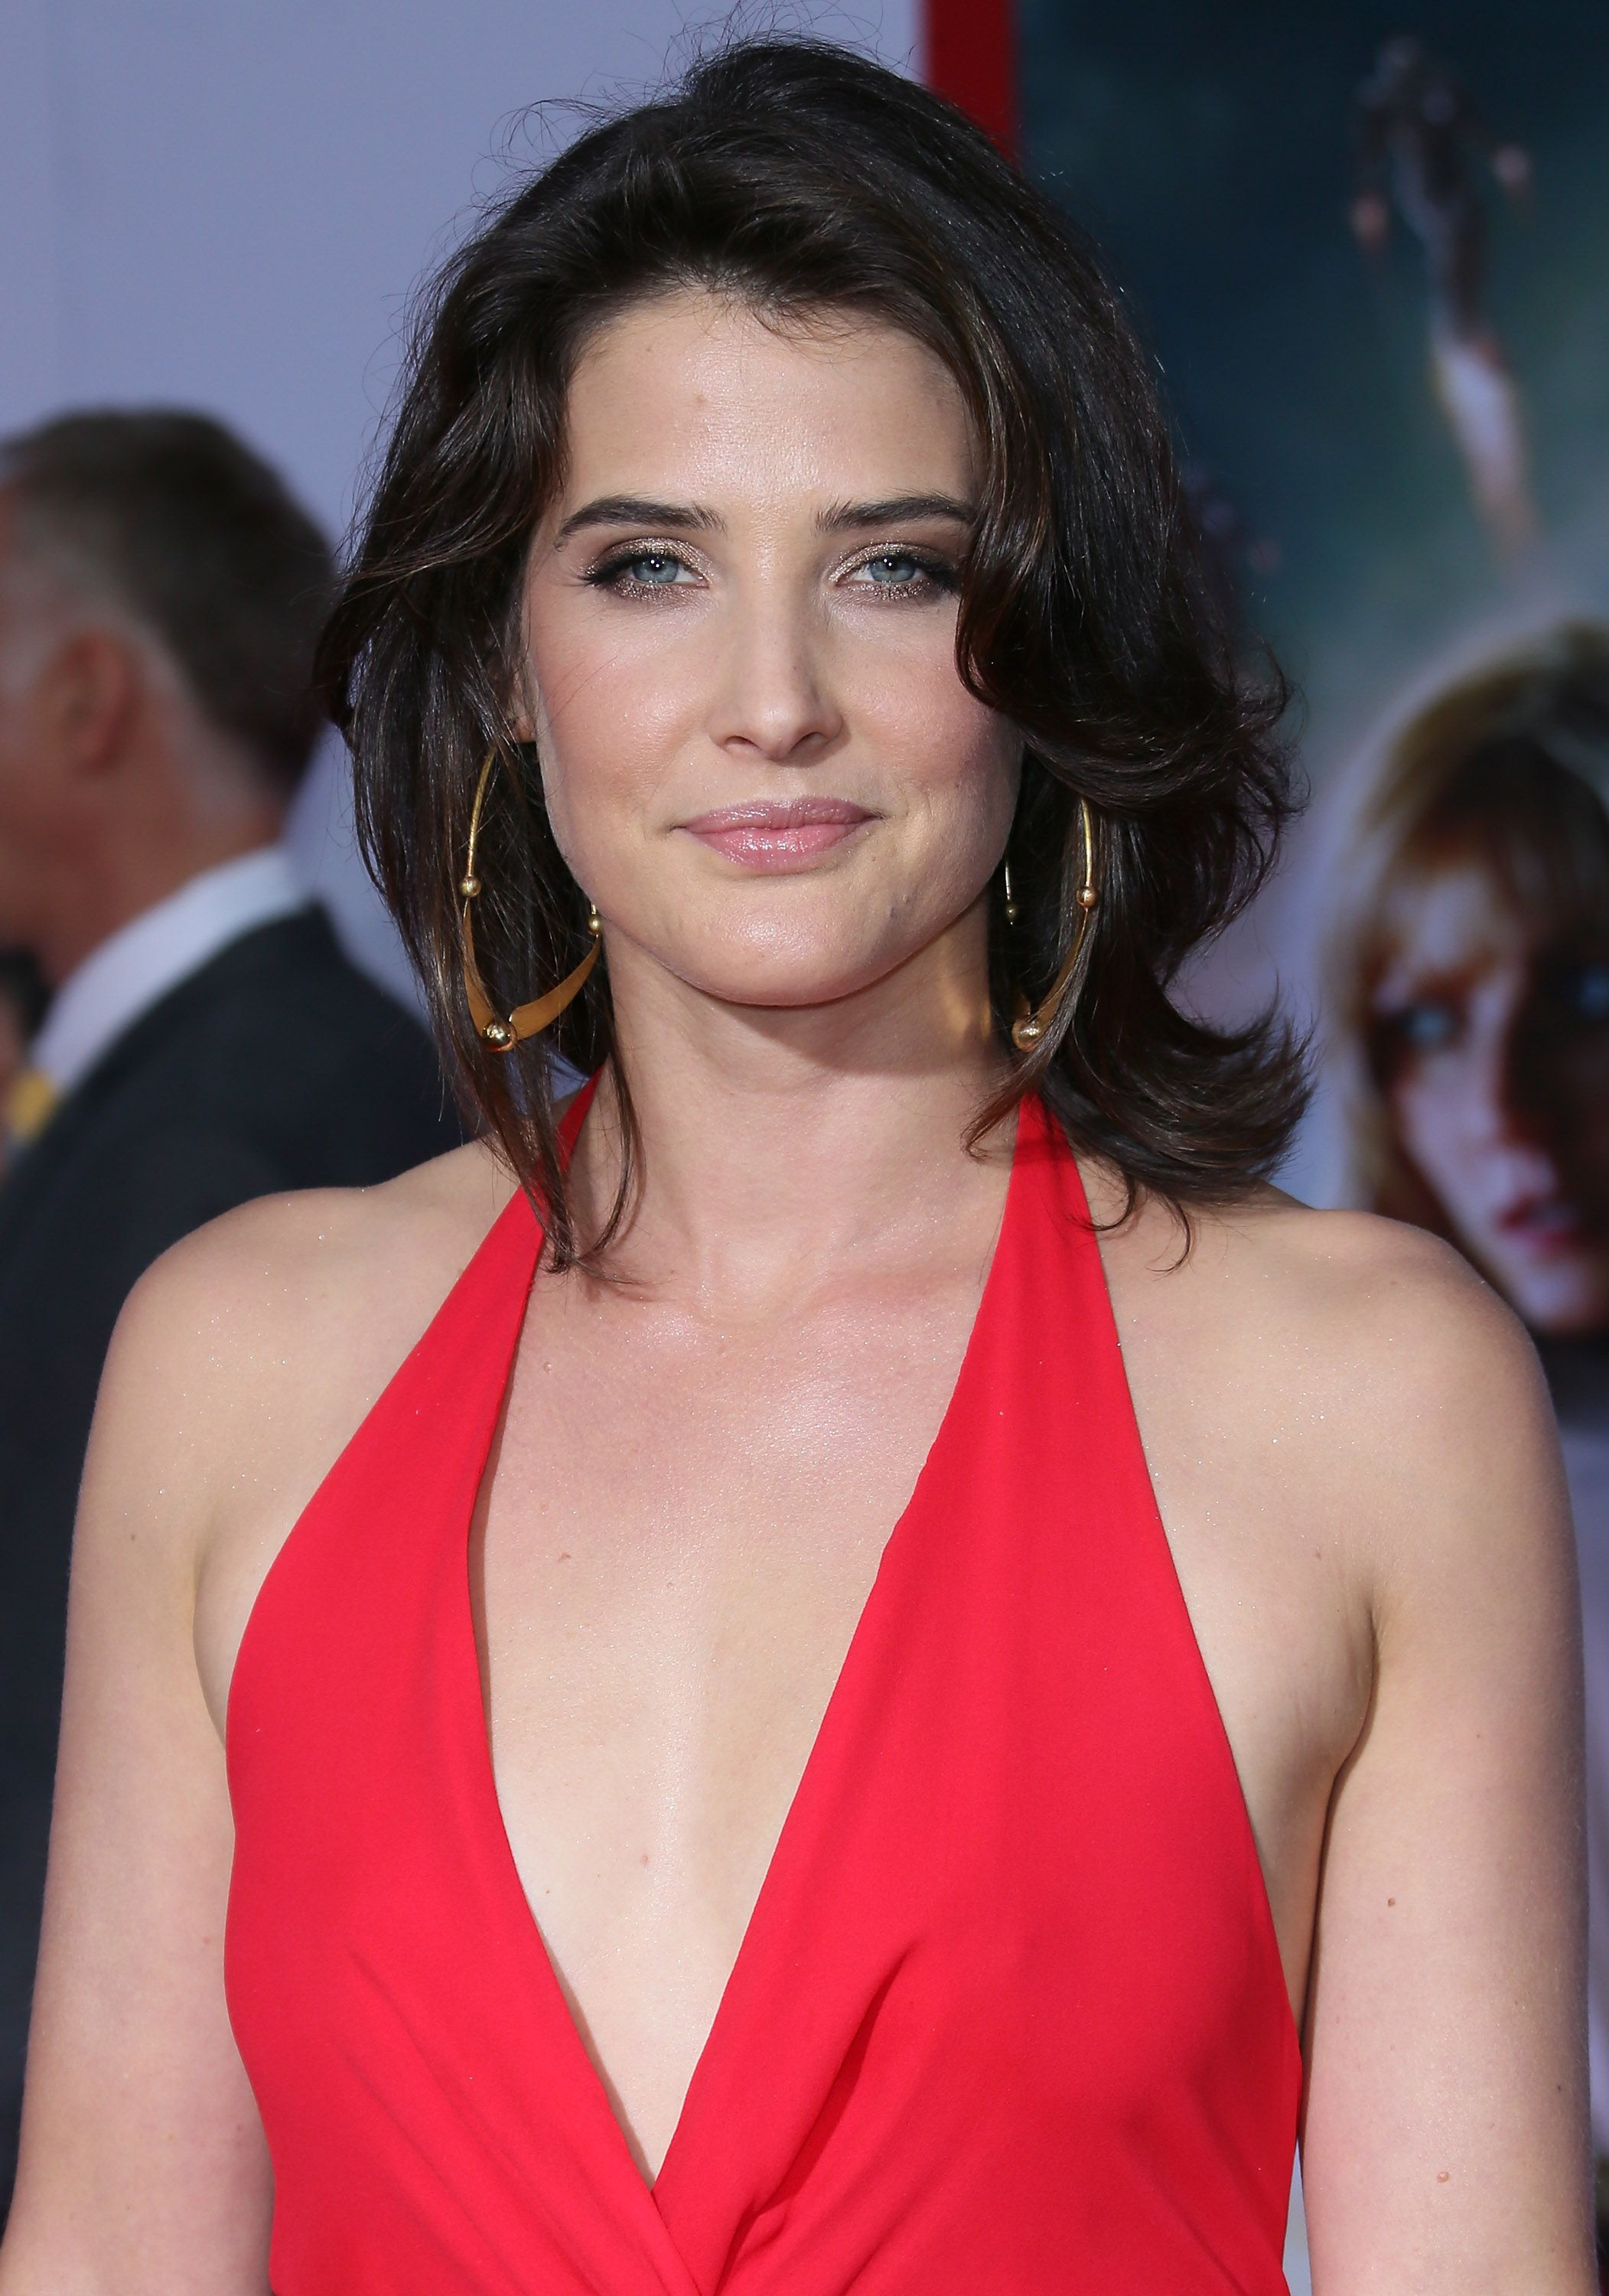 Cobie Smulders Model Cobie Smulders Photo Those Lips